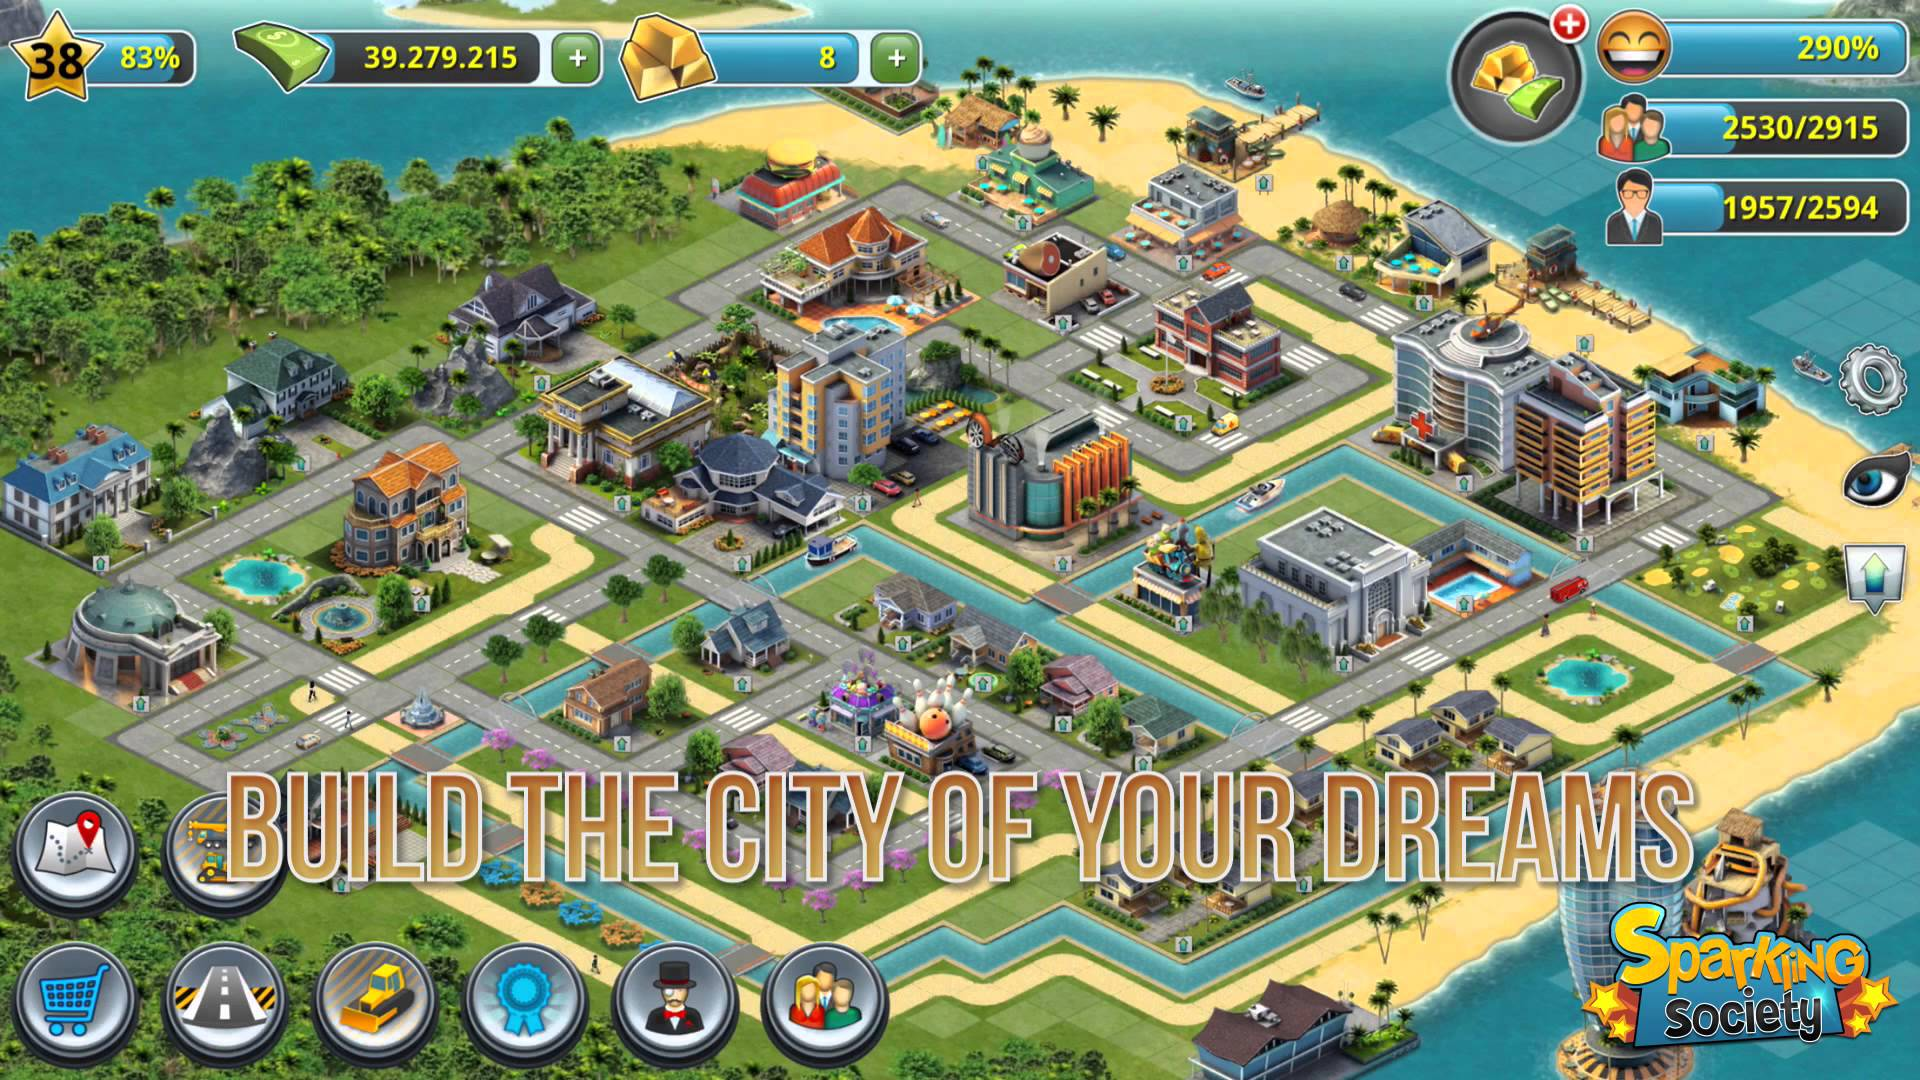 City Island 3 update: Extra Island - Shivering Snows! - YouTube